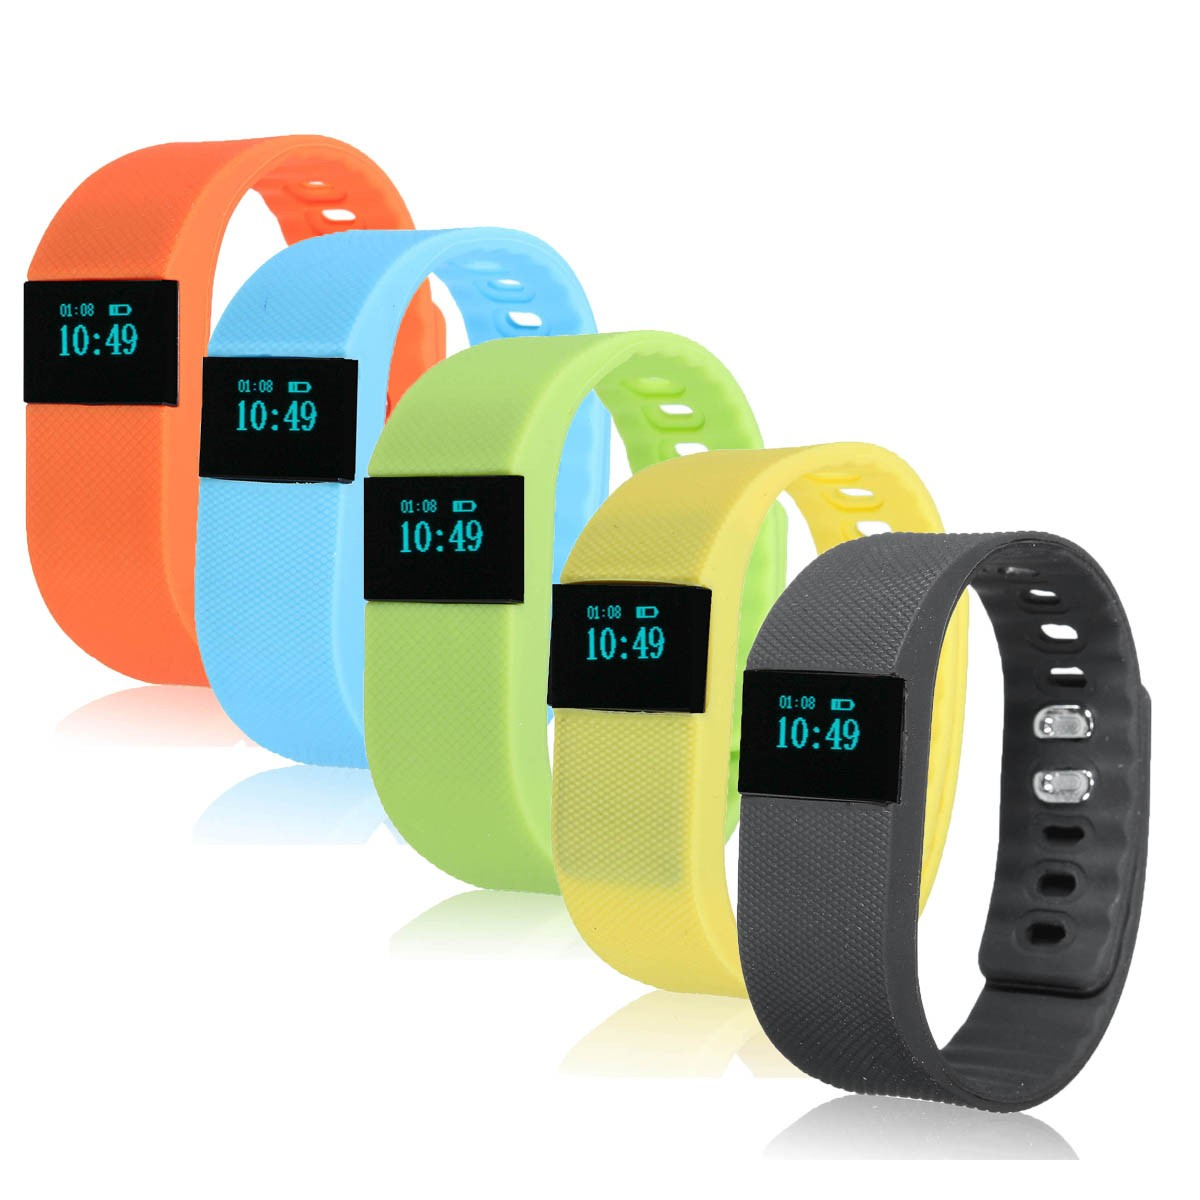 TW64 USB Bluetooth Pedometer Smart Wrist Watch Bracelet Waterproof for Android IOS, Blue/ Yellow/ Orange/ Black/ Green